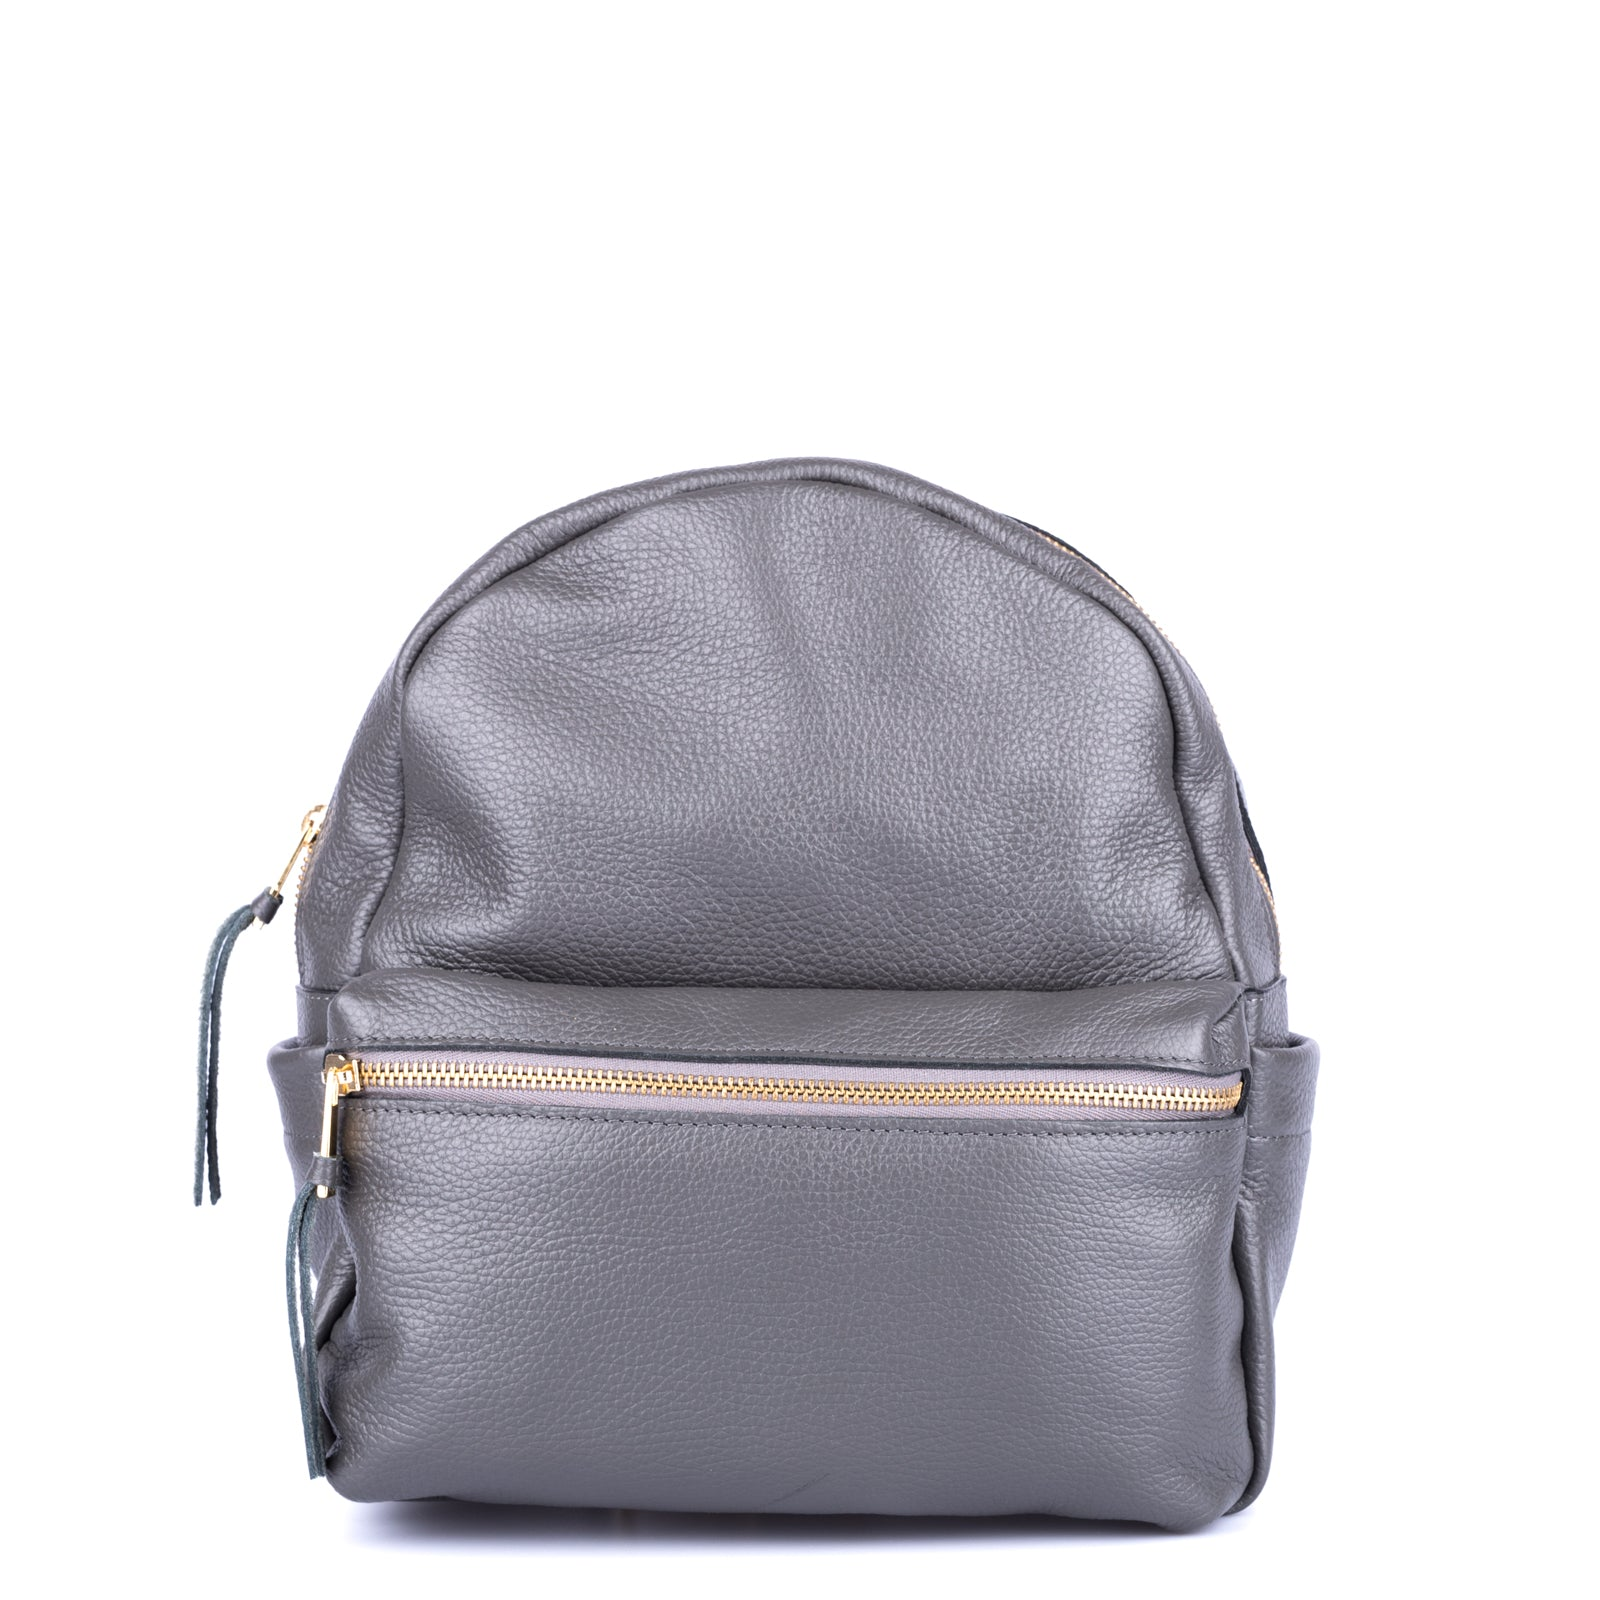 Zona Brera Leather Backpack-ZONA BRERA-SHOPATVOI.COM - Luxury Fashion Designer